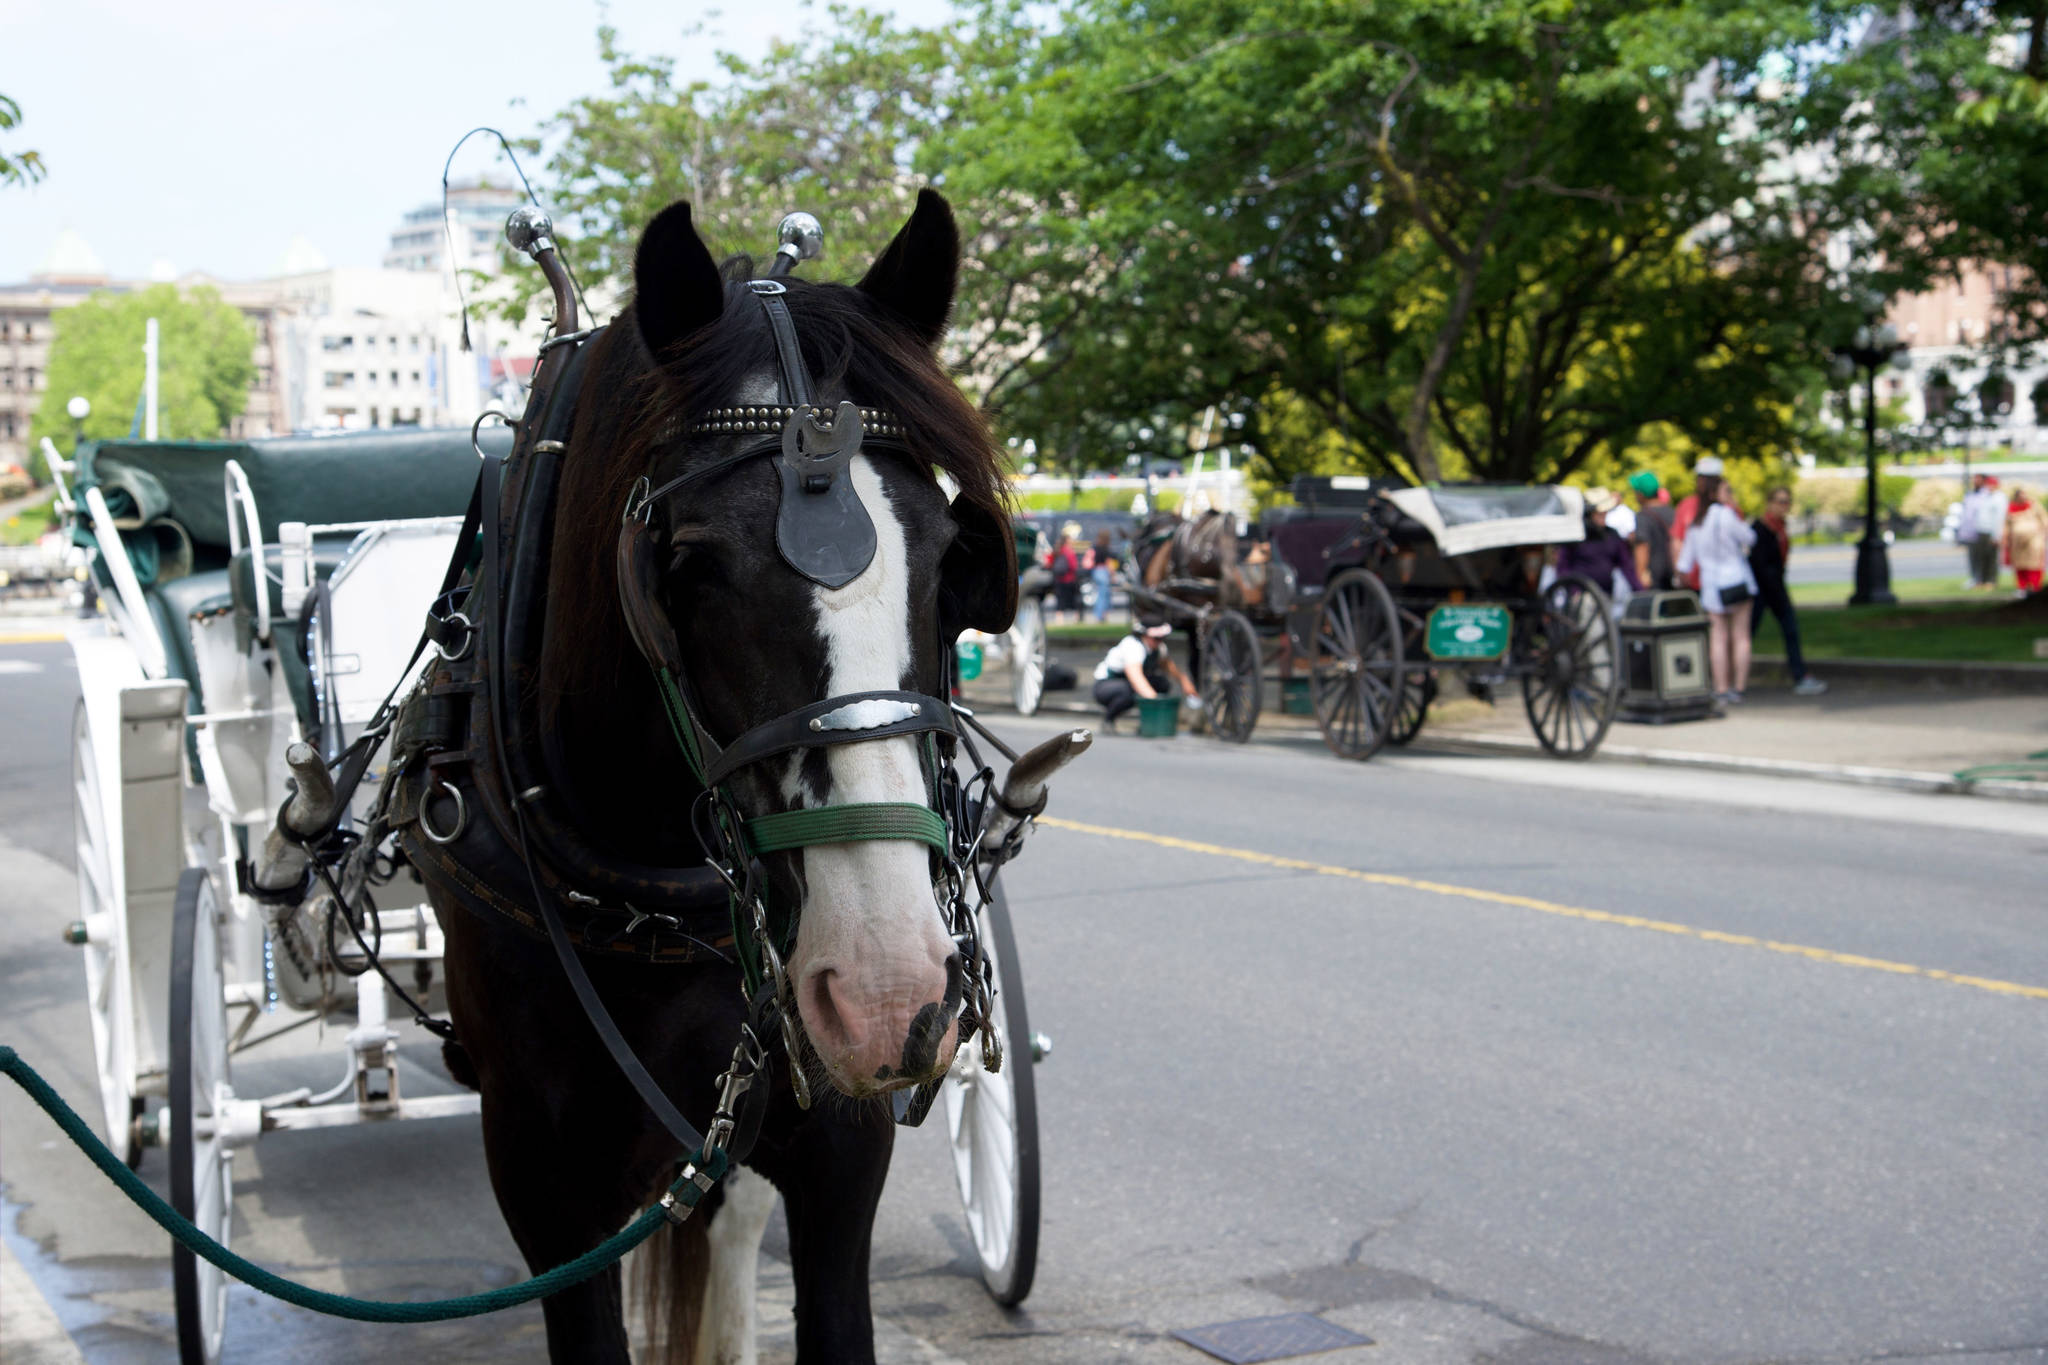 Victoria City Council asked for advise from the BCSPCA on how to move forward with the horse-drawn carriage industry. (Nicole Crescenzi/News Staff)